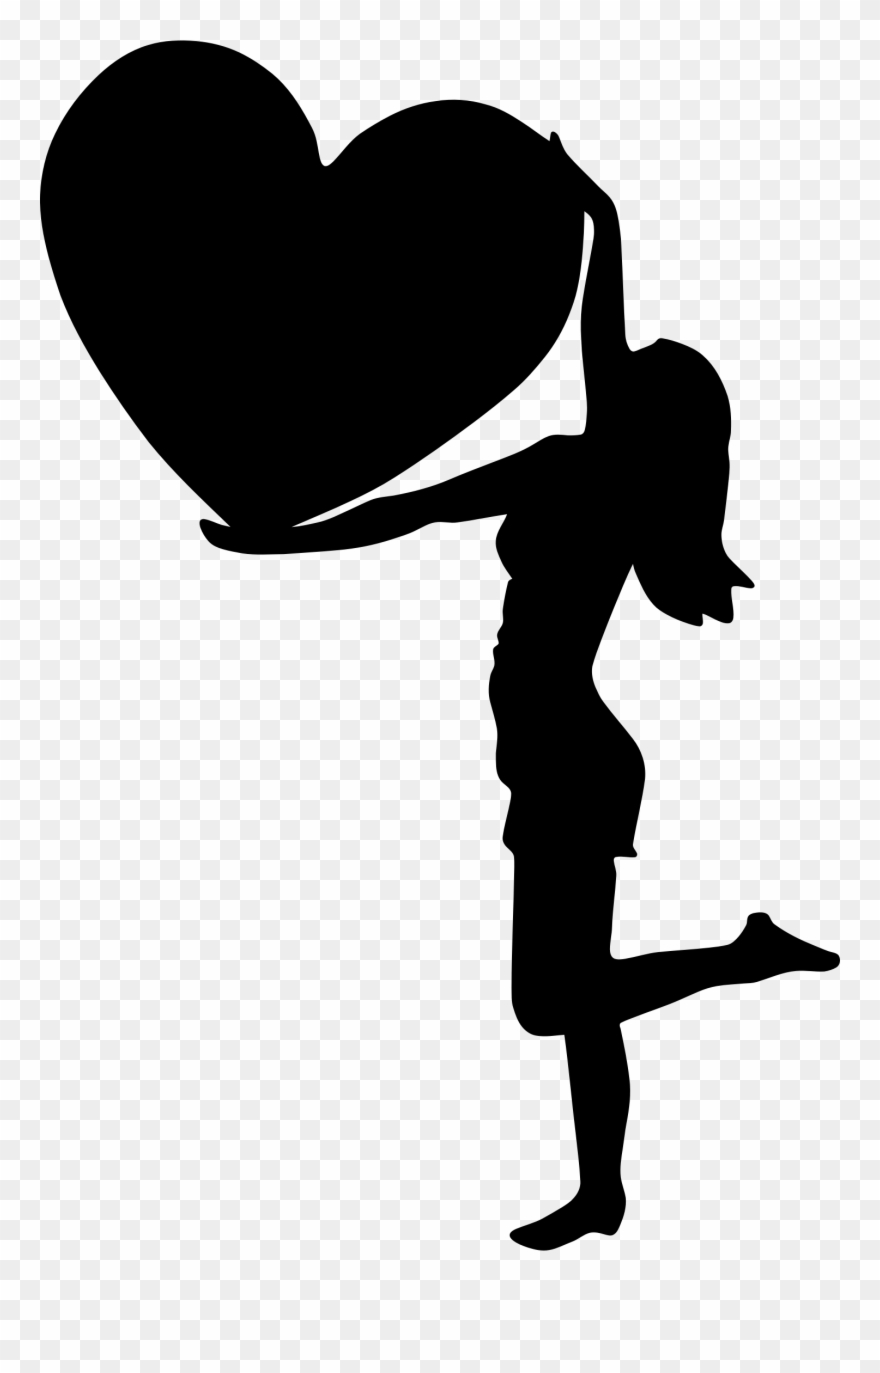 Clip Art Black And White Silhouette At Getdrawings.